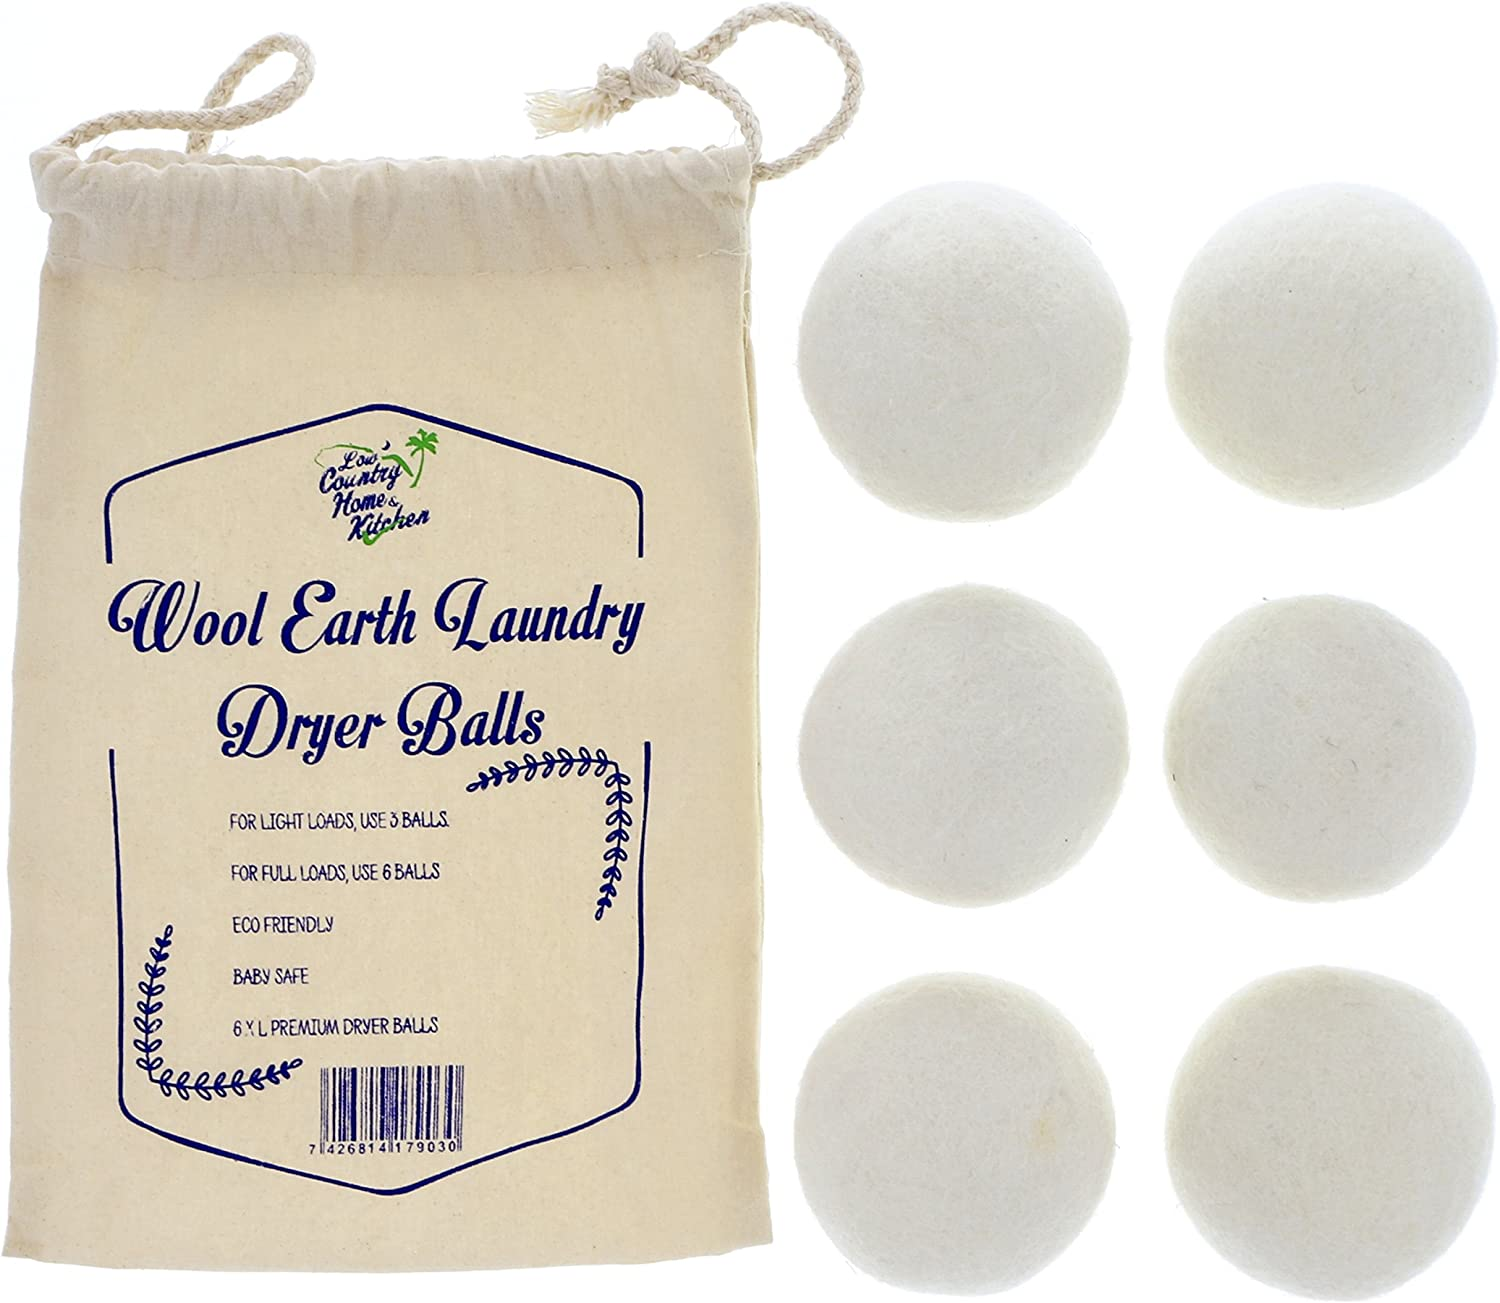 Wool Dryer Balls by Wool Earth XL Premium Reusable Eco Friendly Natural Fabric Softener - Non-Toxic, Hypoallergenic, Baby Safe Laundry Product Gift Set (Pack of 6)